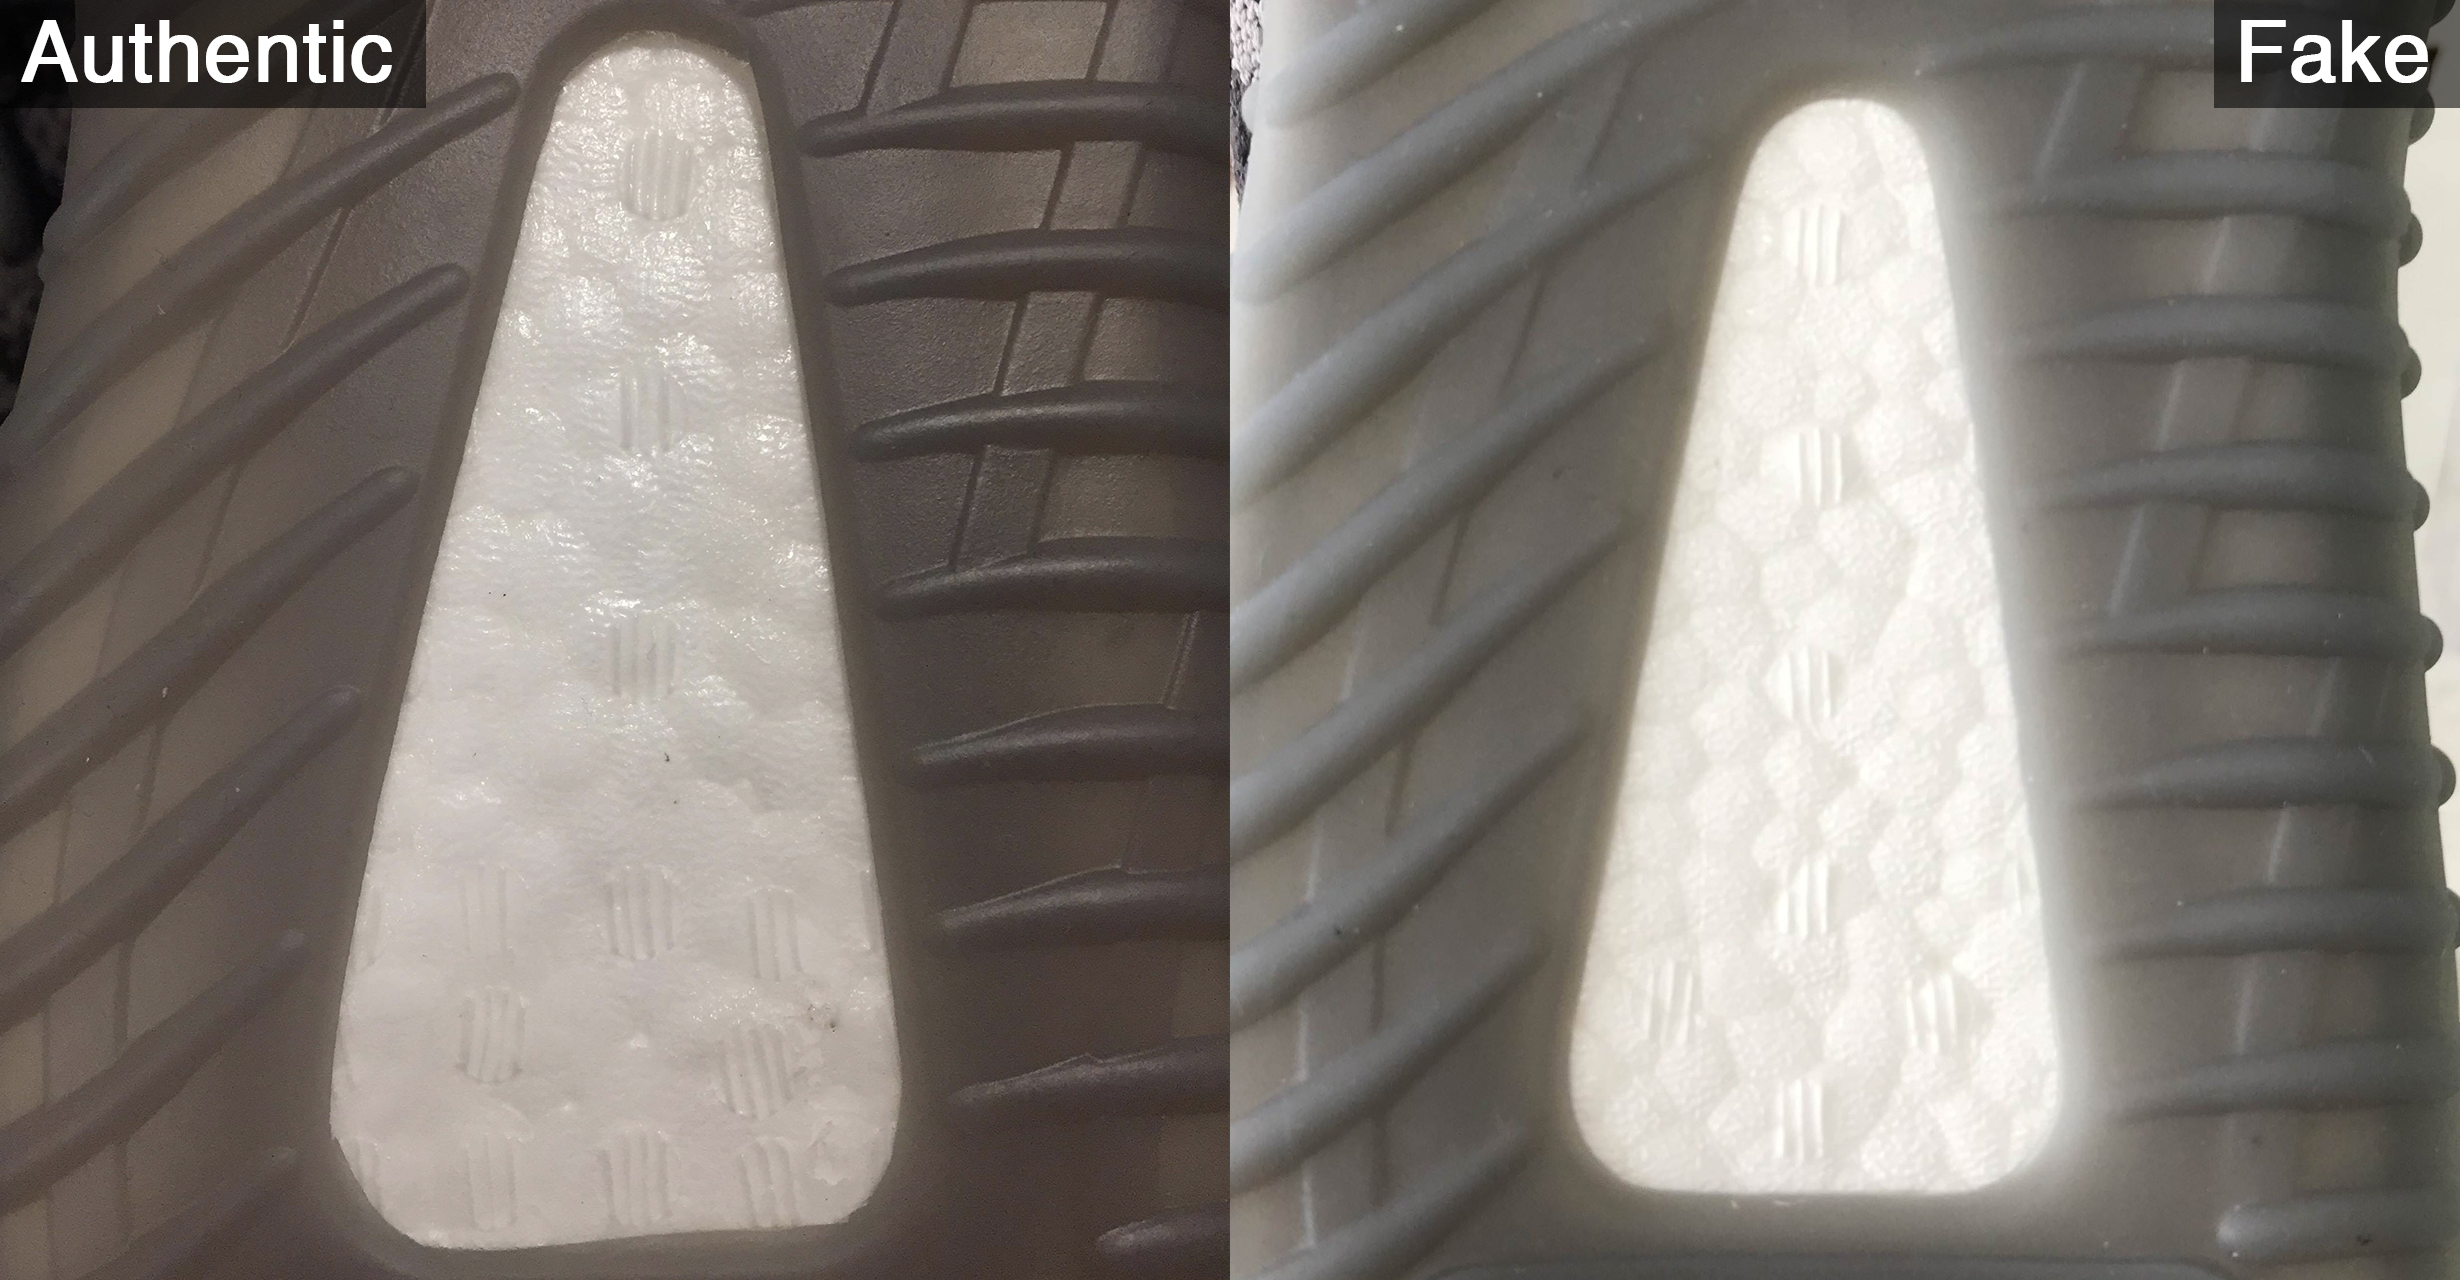 c080aac46a78a First thing to look out for is the marks on the boost – the three-striped  circles on the fakes and multi-striped on the retail pairs.